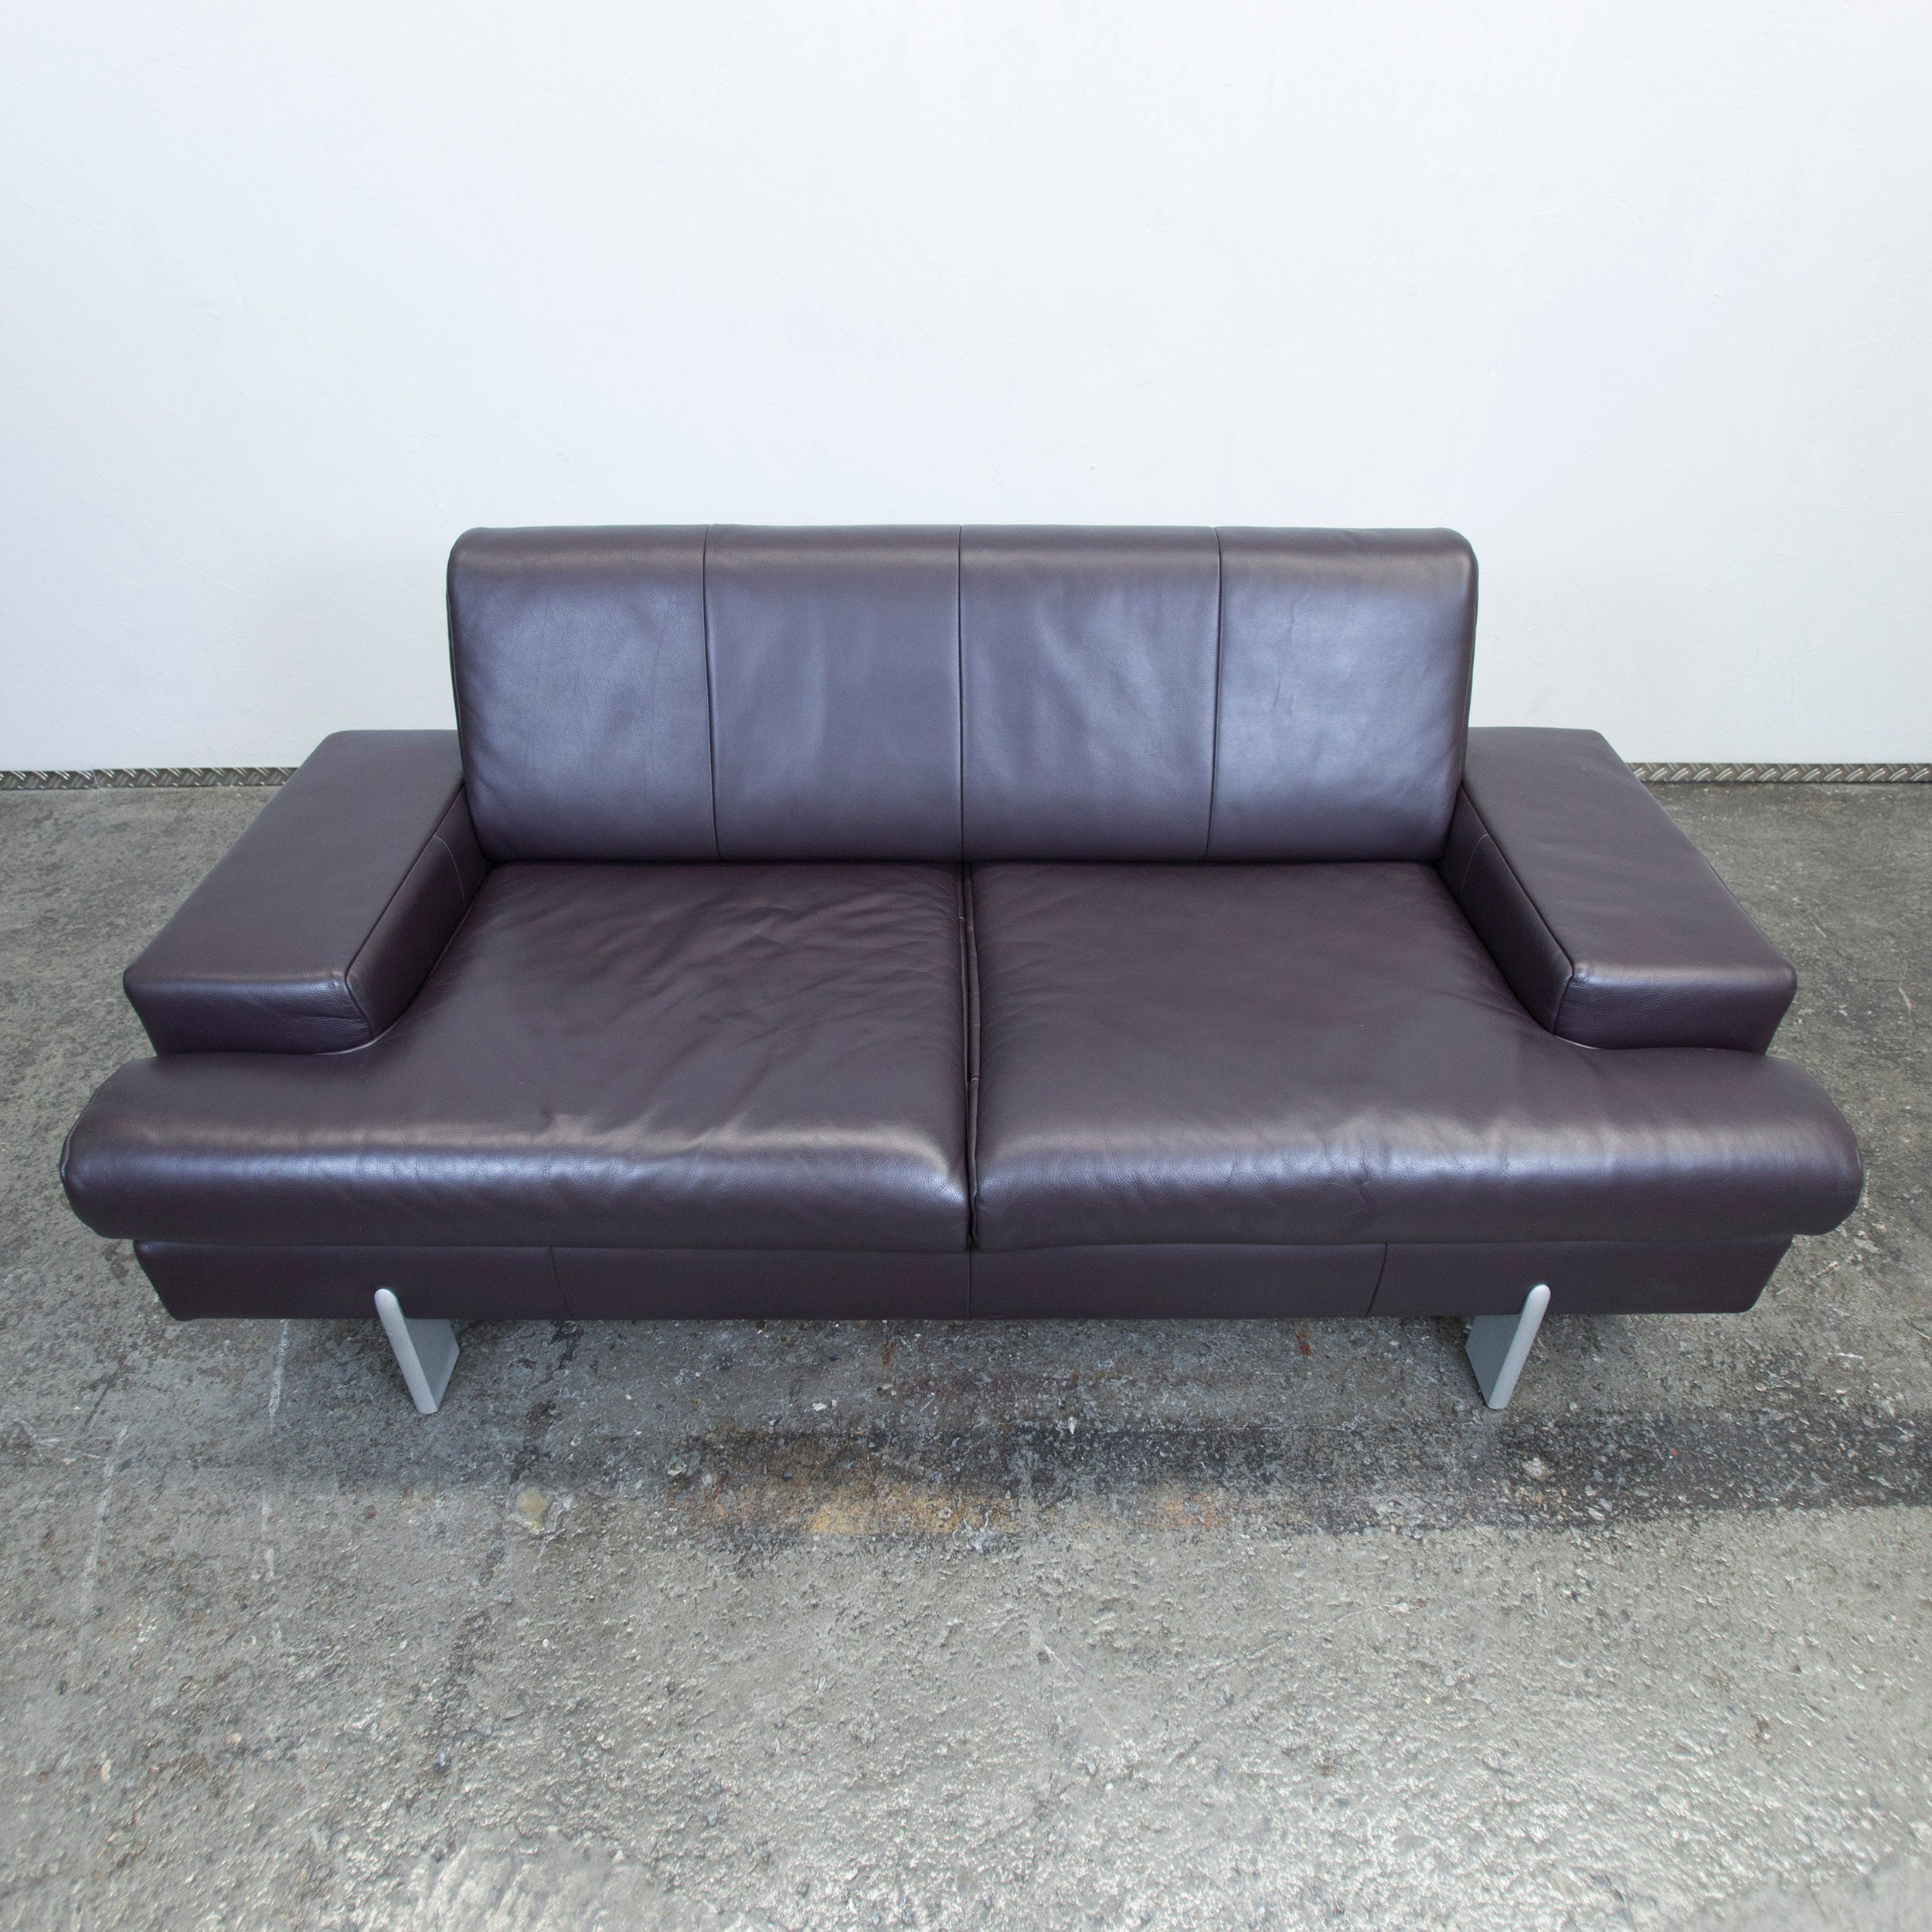 Lila Couch Bmp Rolf Benz Designer Leather Sofa Aubergine Lilac Two Seat Couch Modern